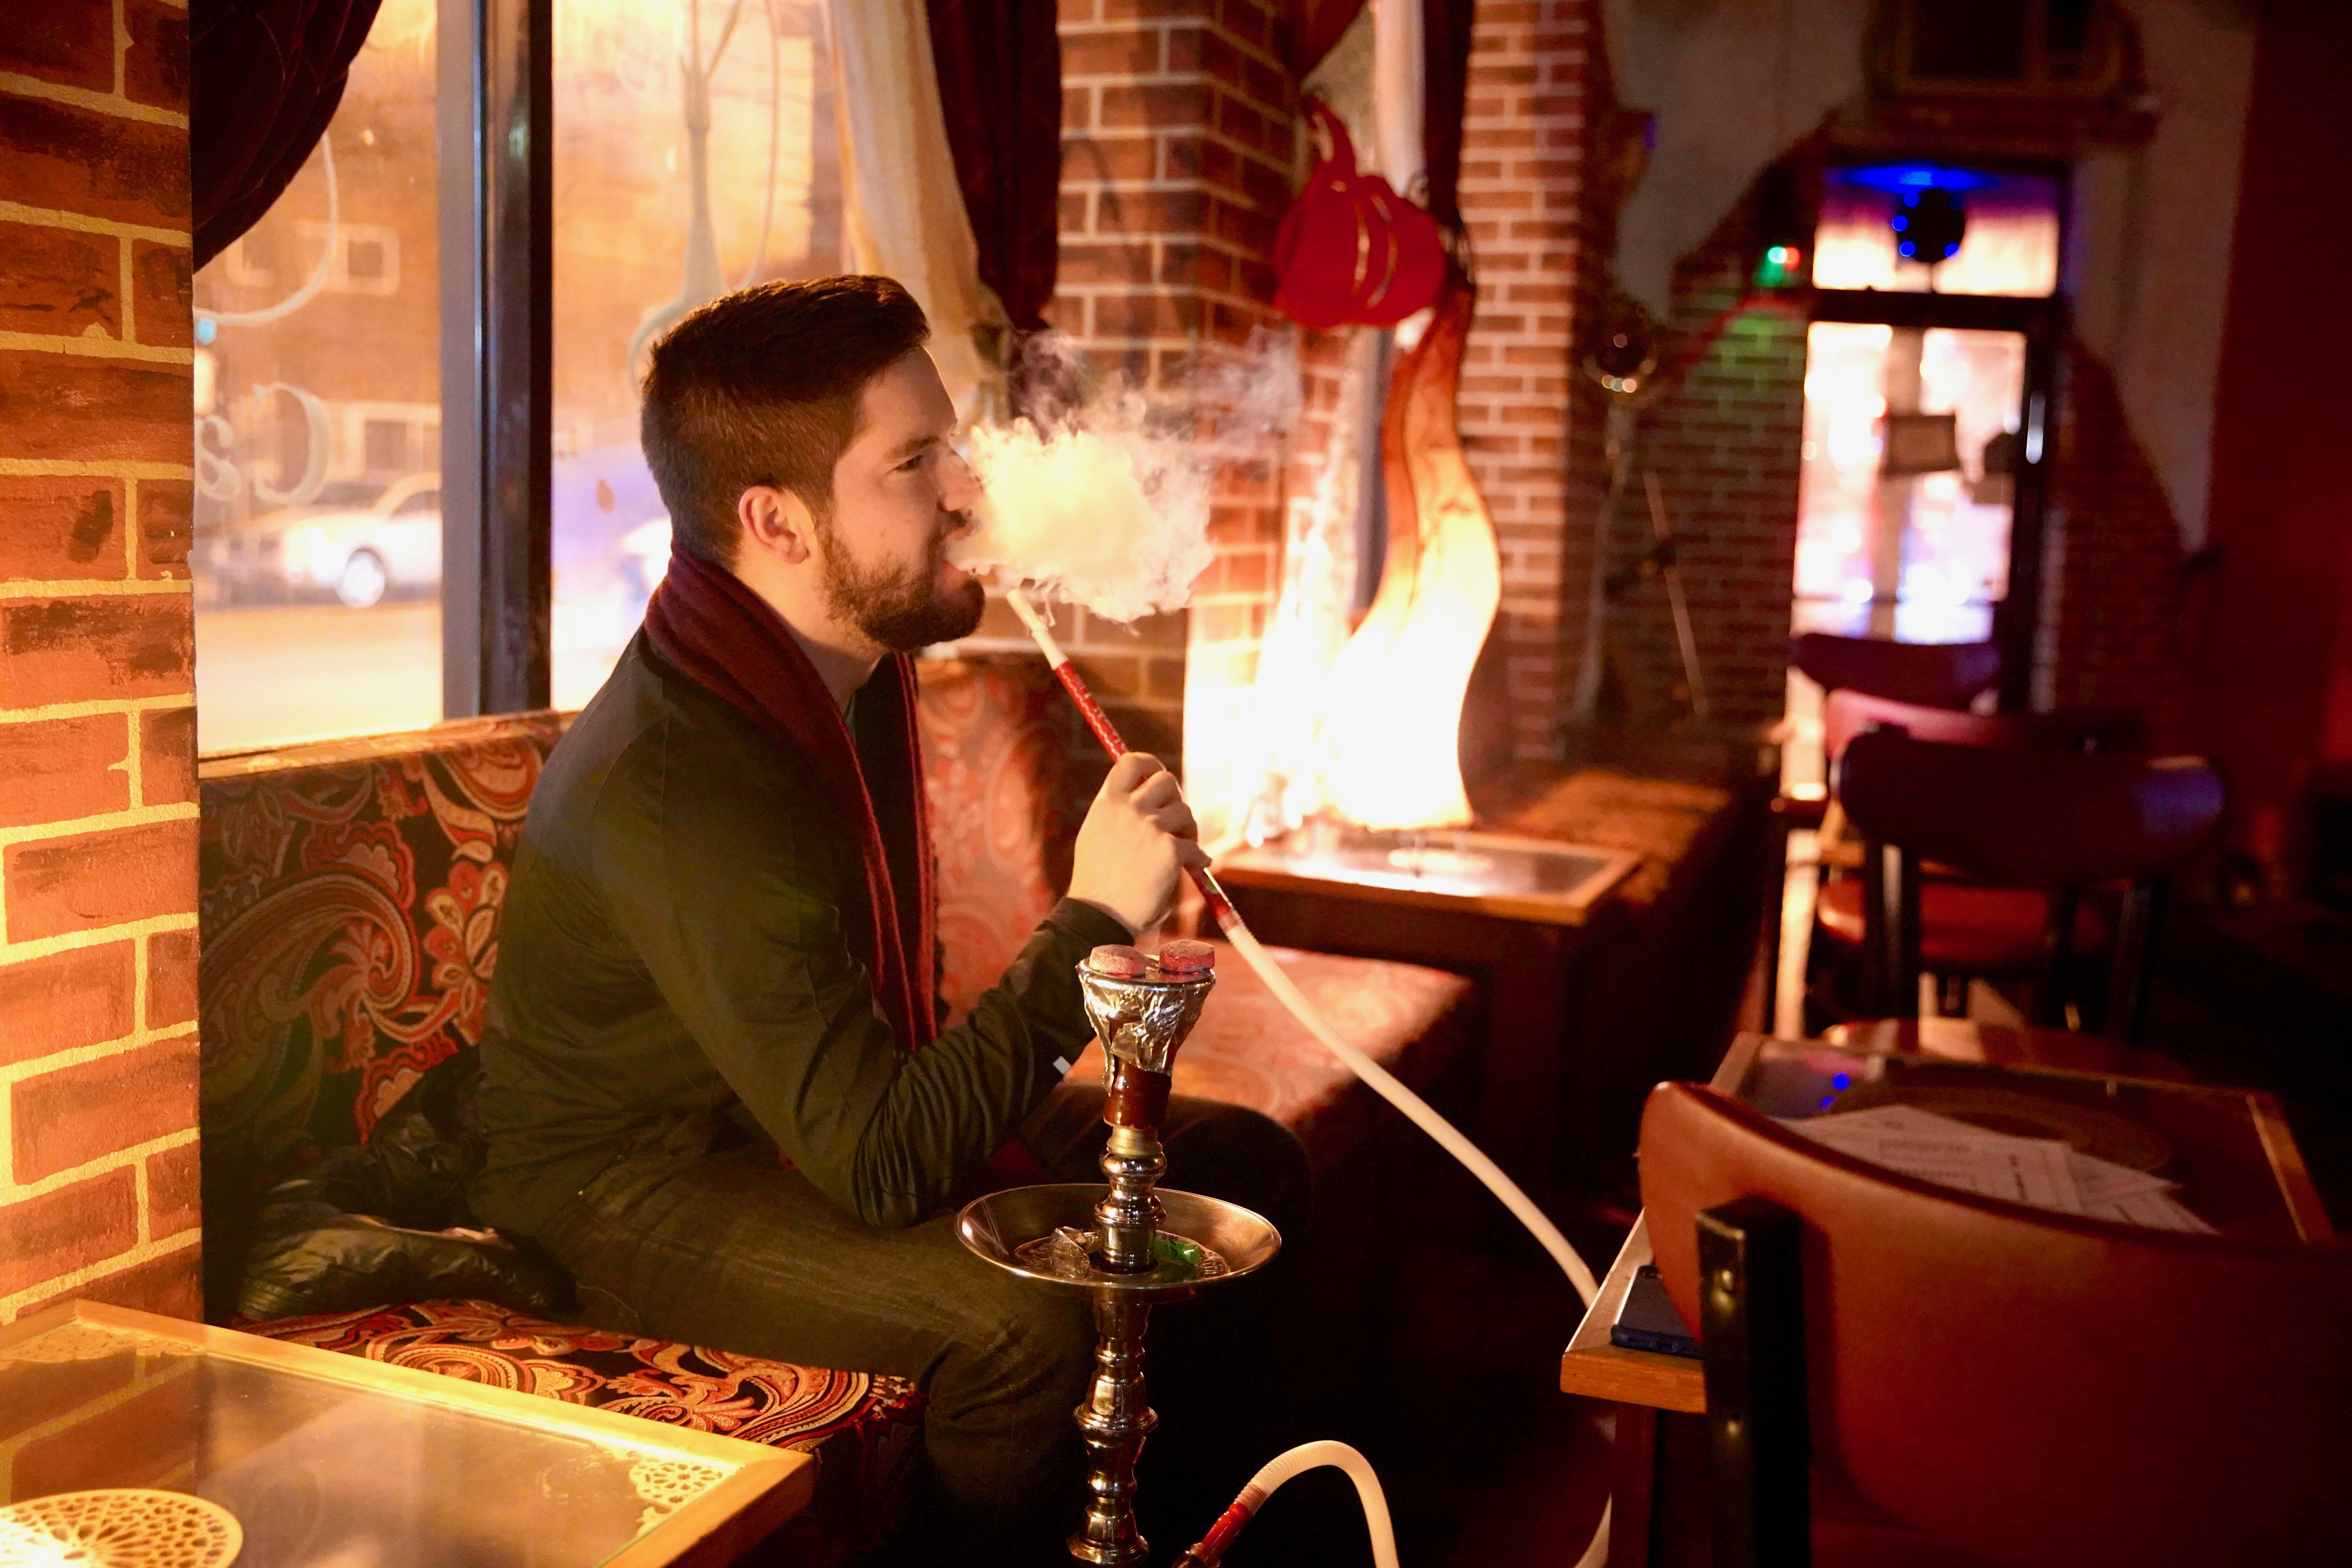 Brandon Wator, 26, smokes a hookah Wednesday, Jan. 15, 2020 at Arabia Cafe Hookah Lounge in Noble Square.